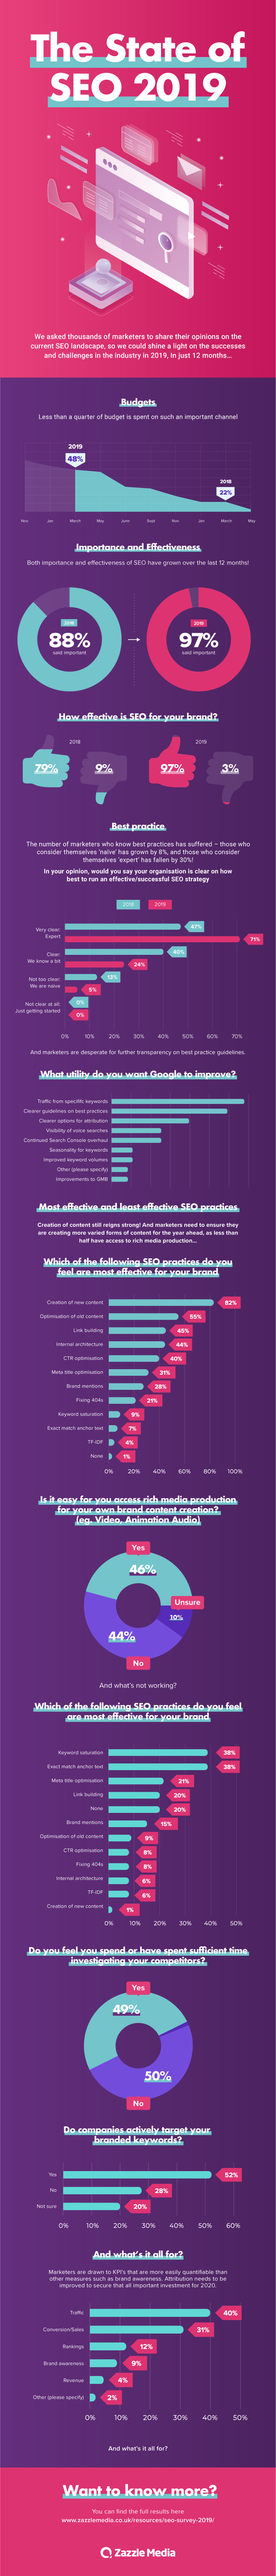 State of SEO 2019 Infographic